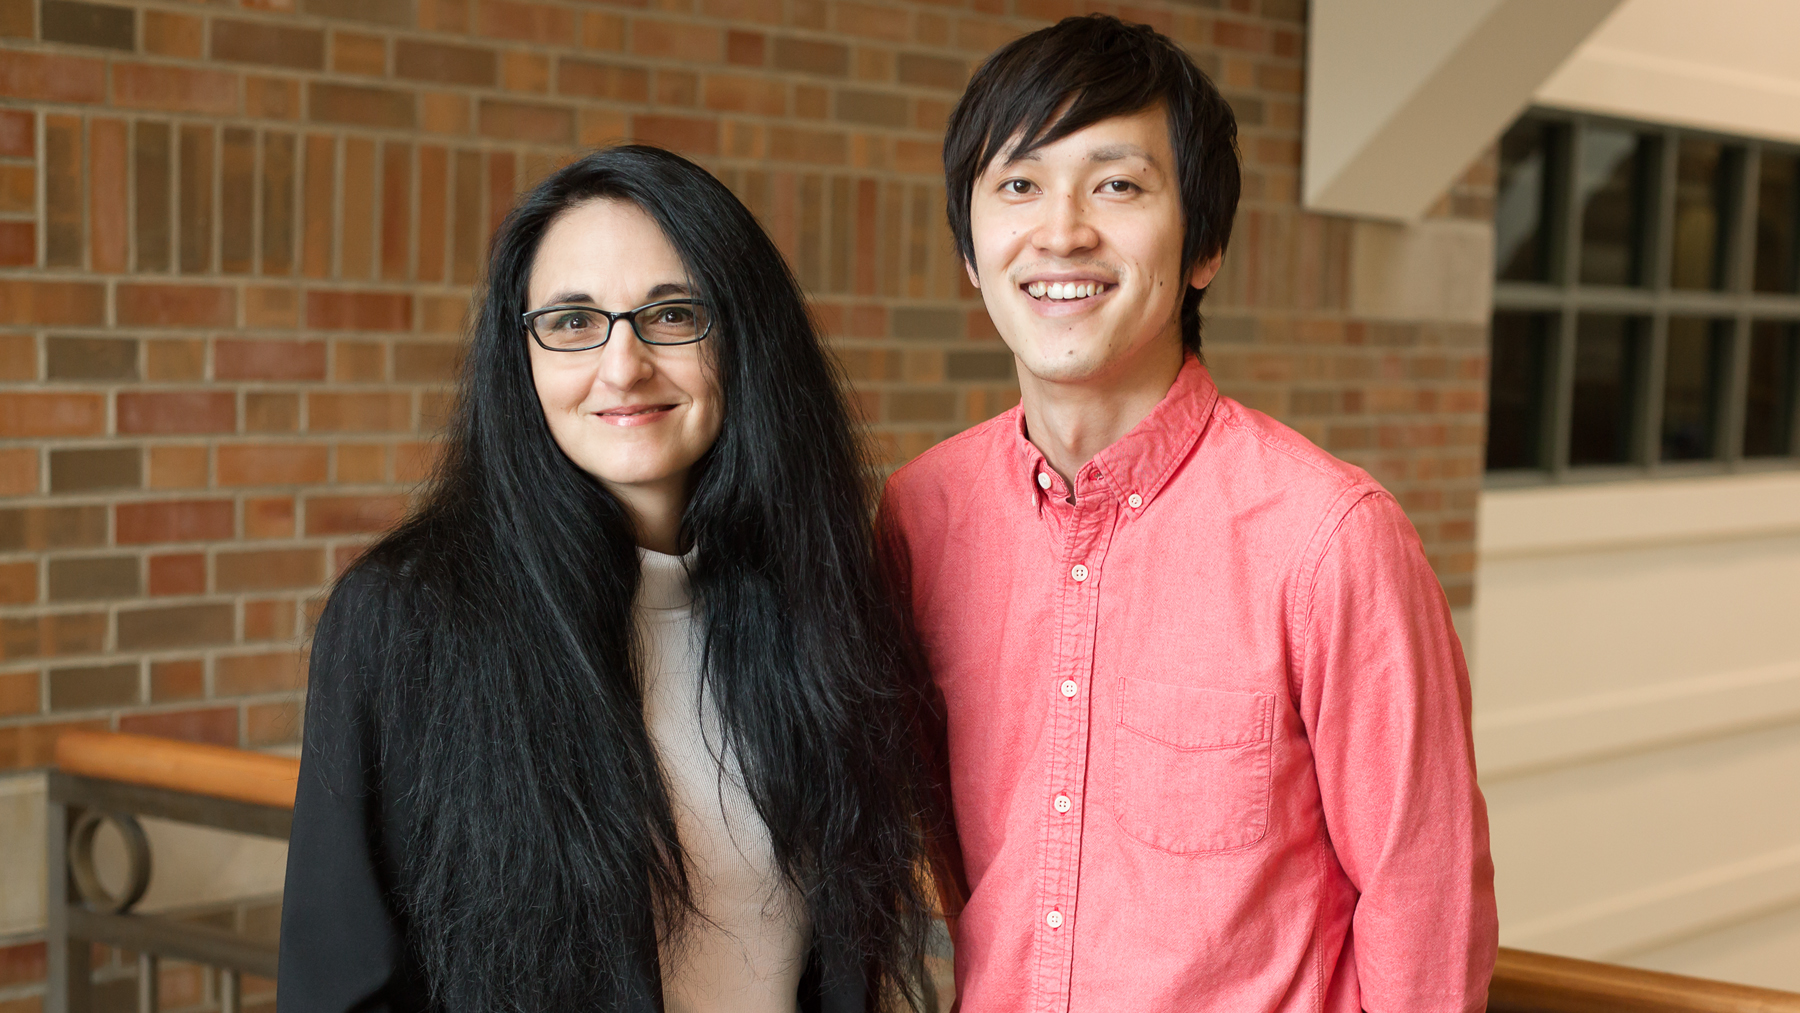 Psychology professor Sanda Dolcos and graduate student Yuta Katsumi. Photo by L. Brian Stauffer